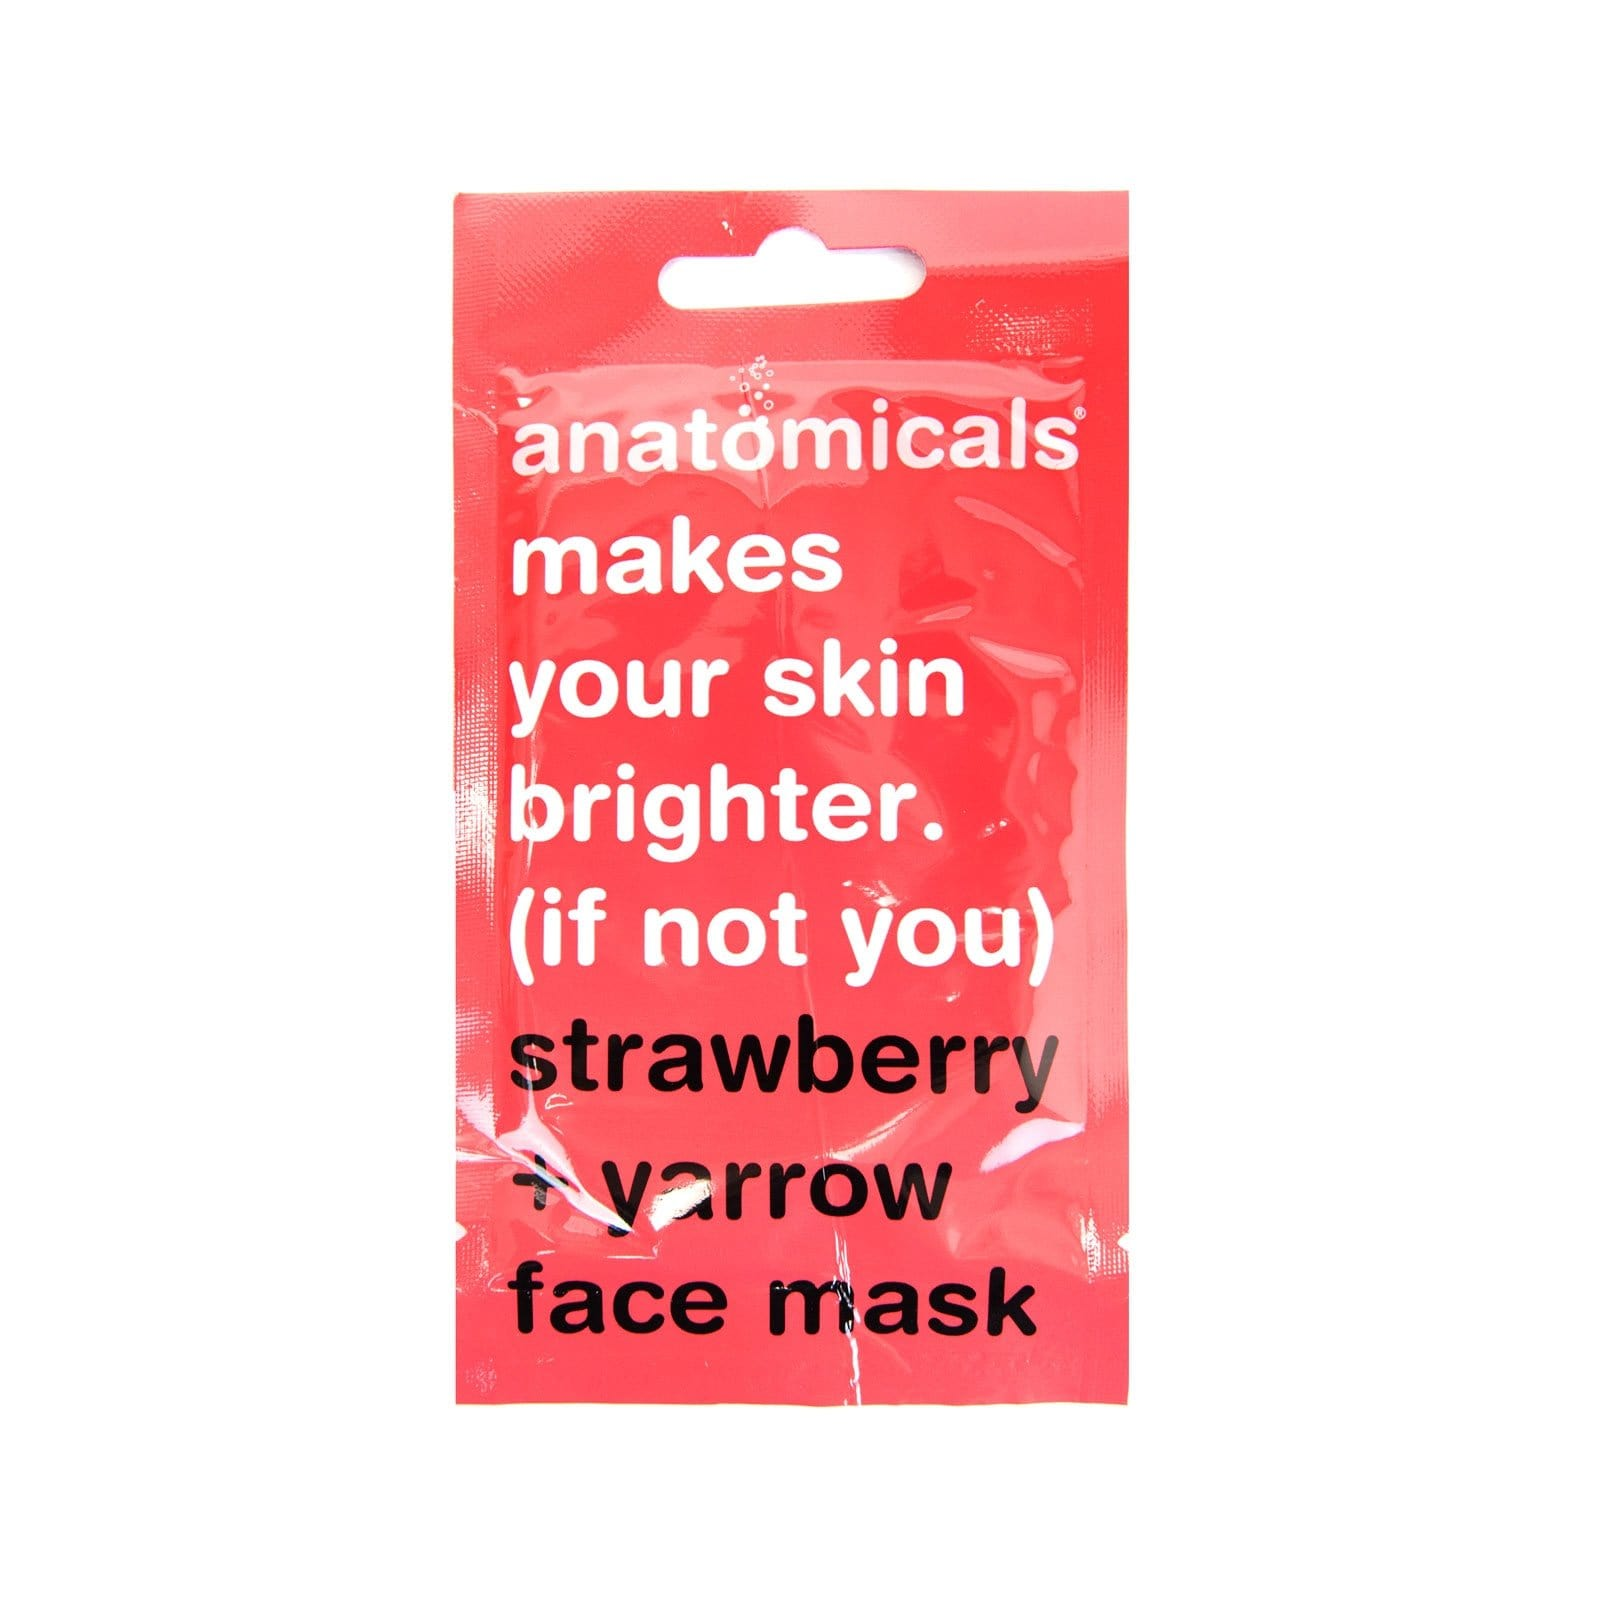 Makes Your Skin Brighter. (If Not You) Face Mask